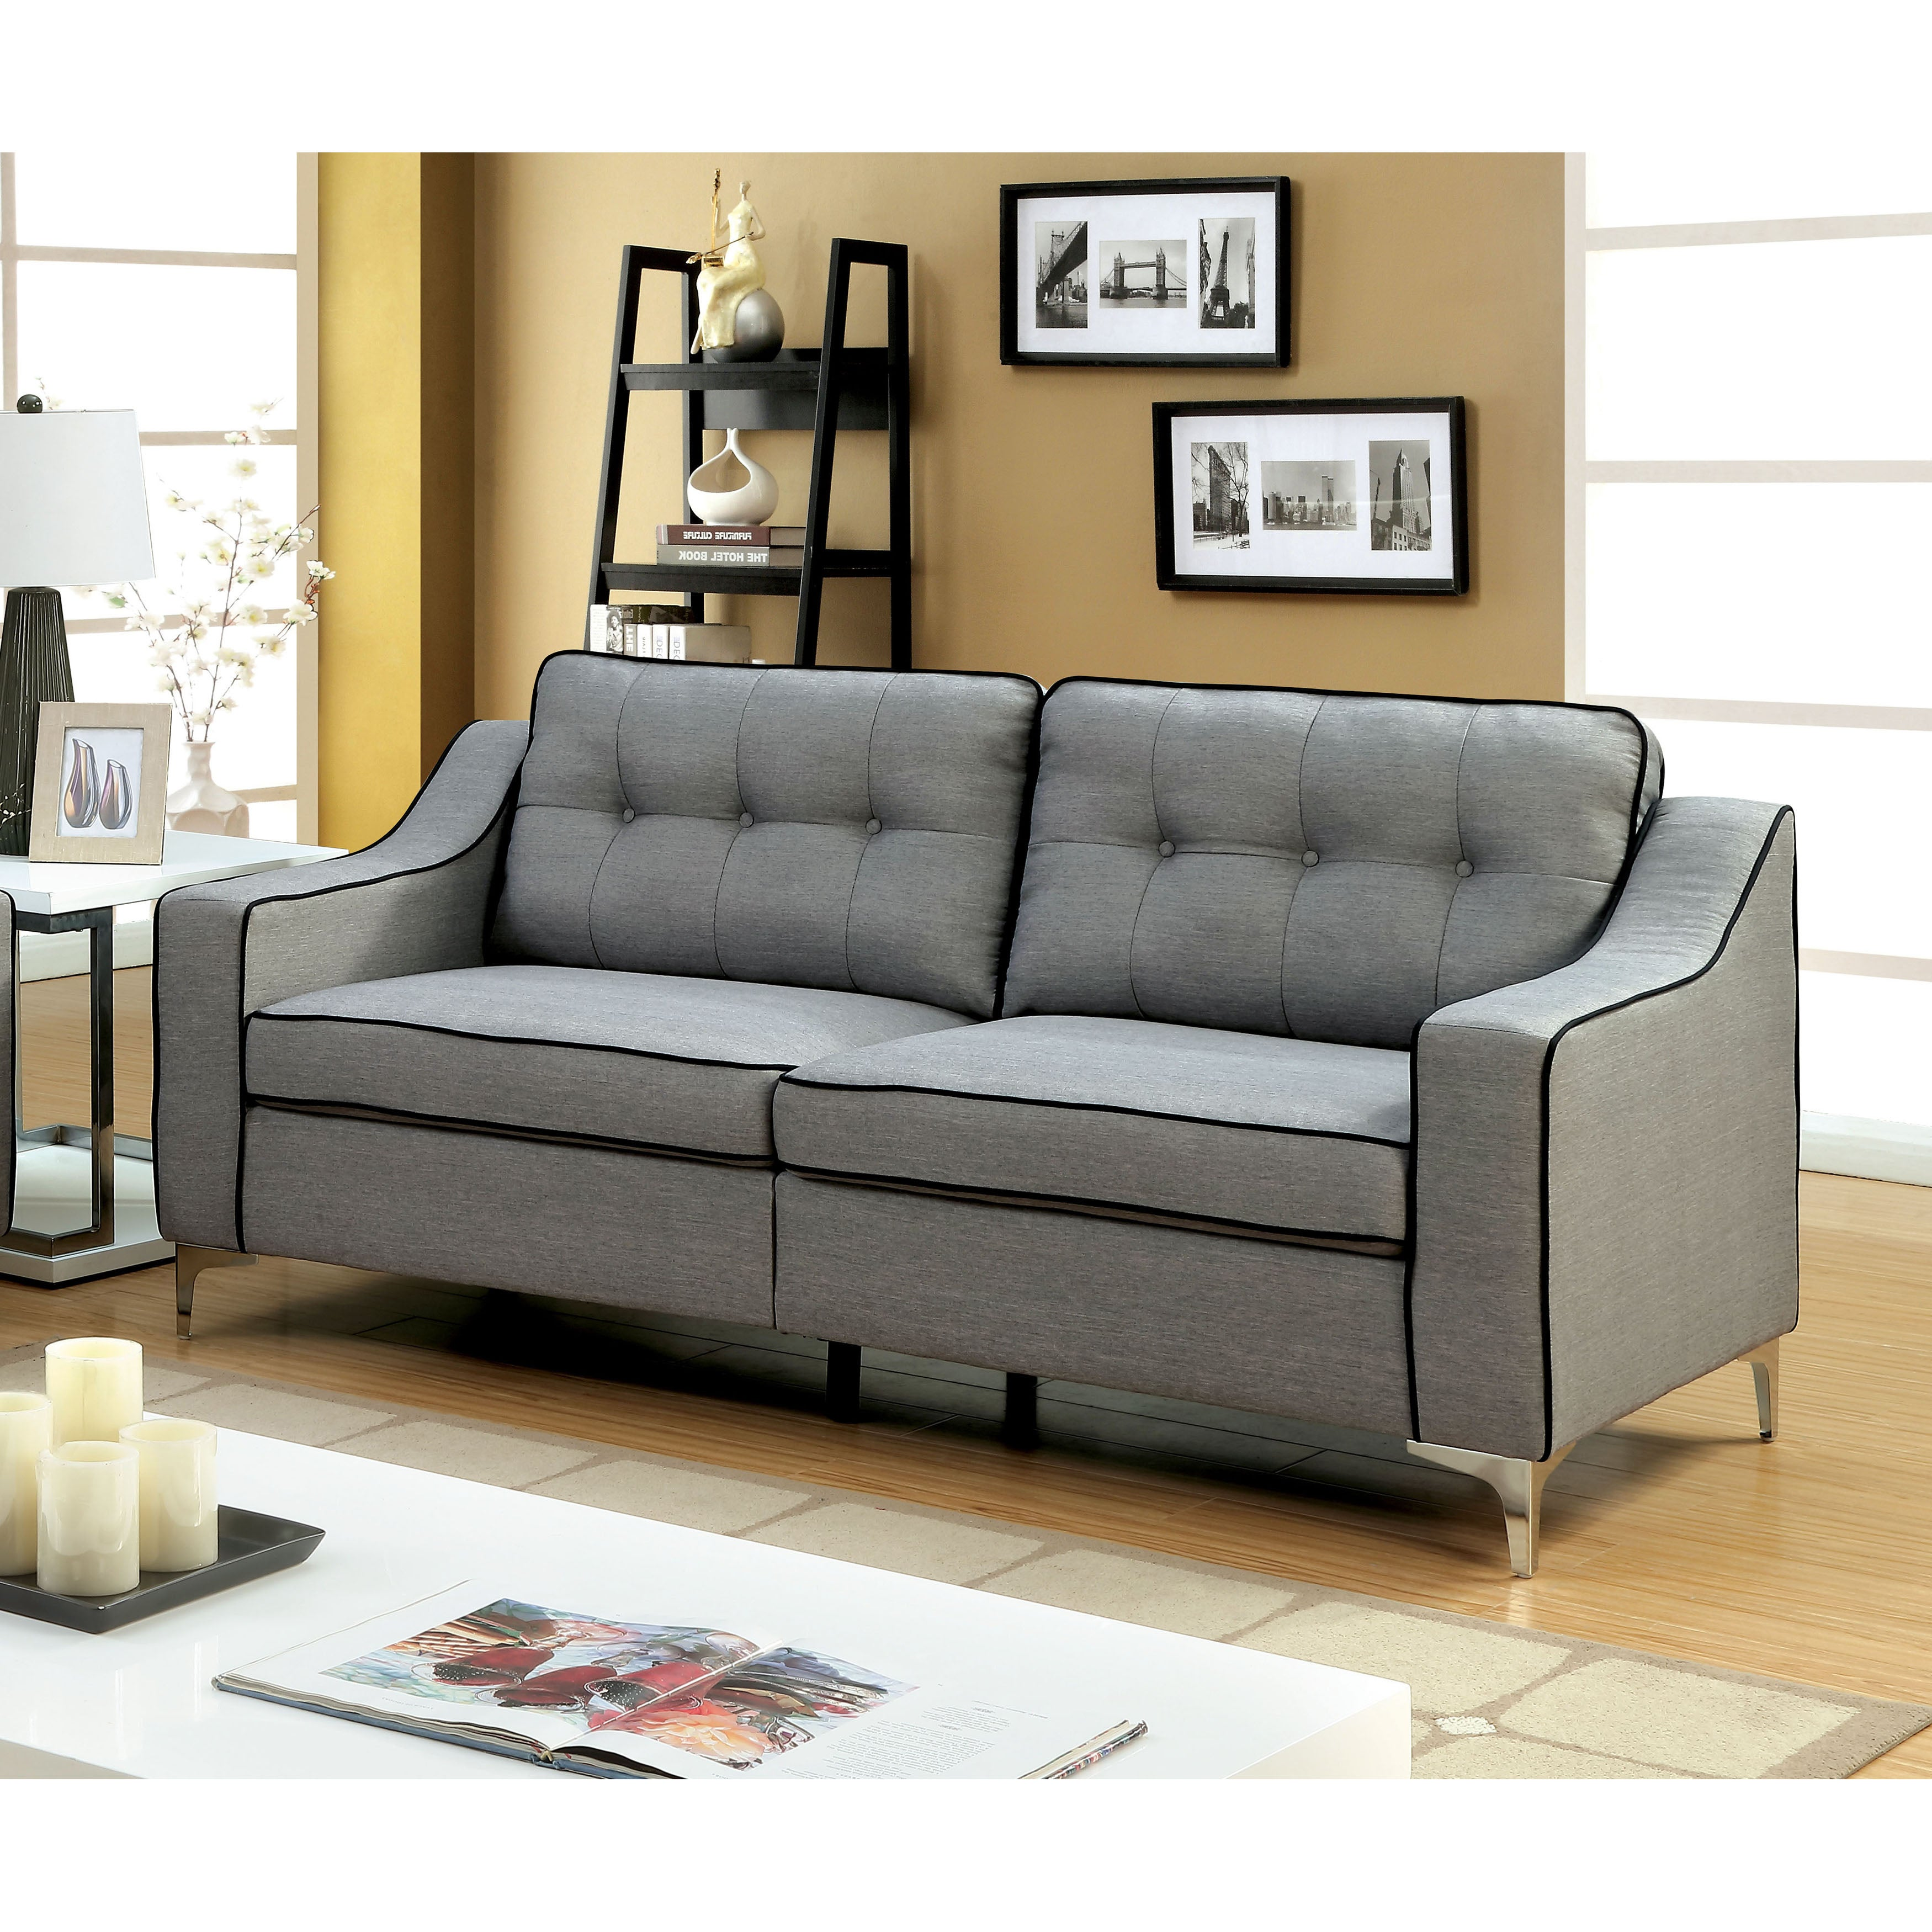 Sylvanas Contemporary Tufted Linen Sofa By Furniture Of America Free Shipping Today 14124722